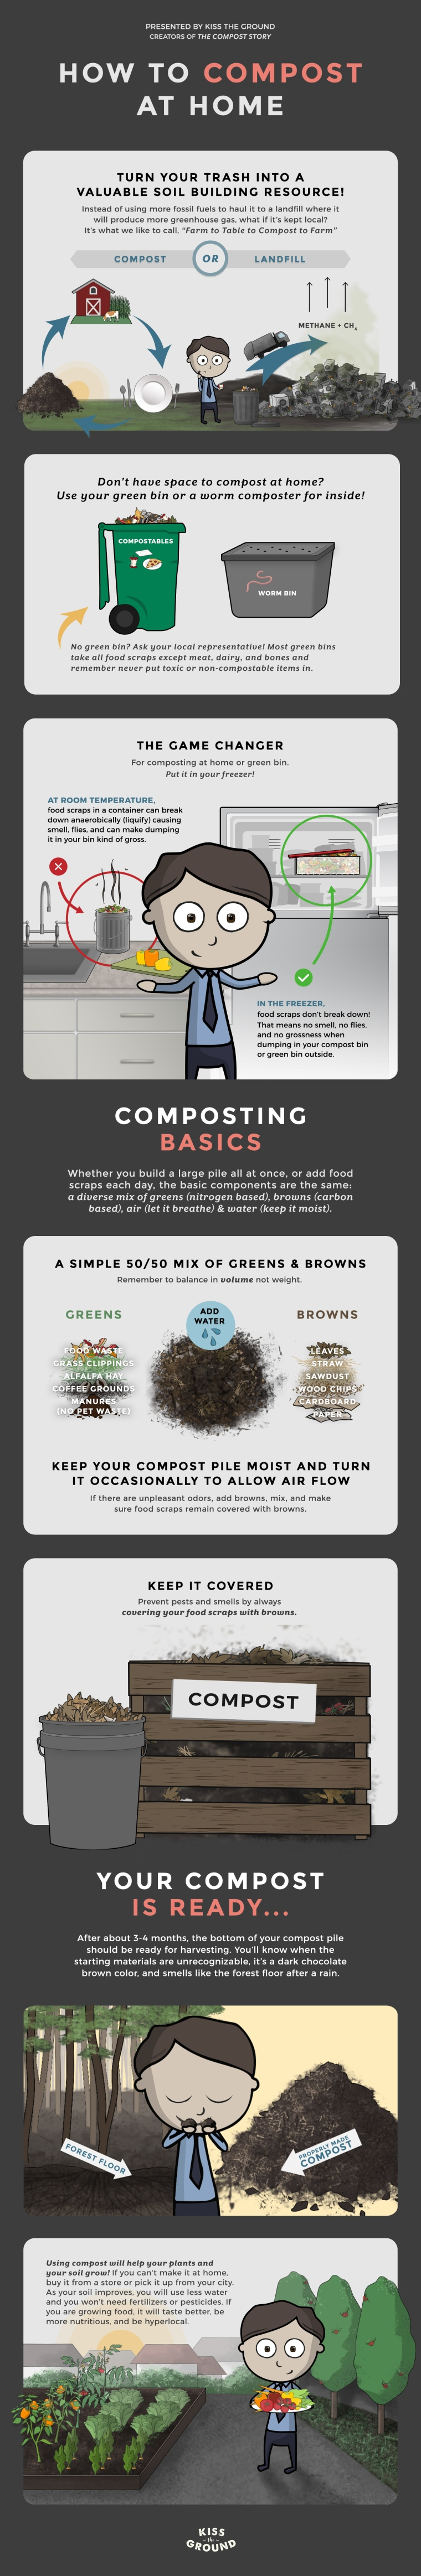 Compost Story infographic